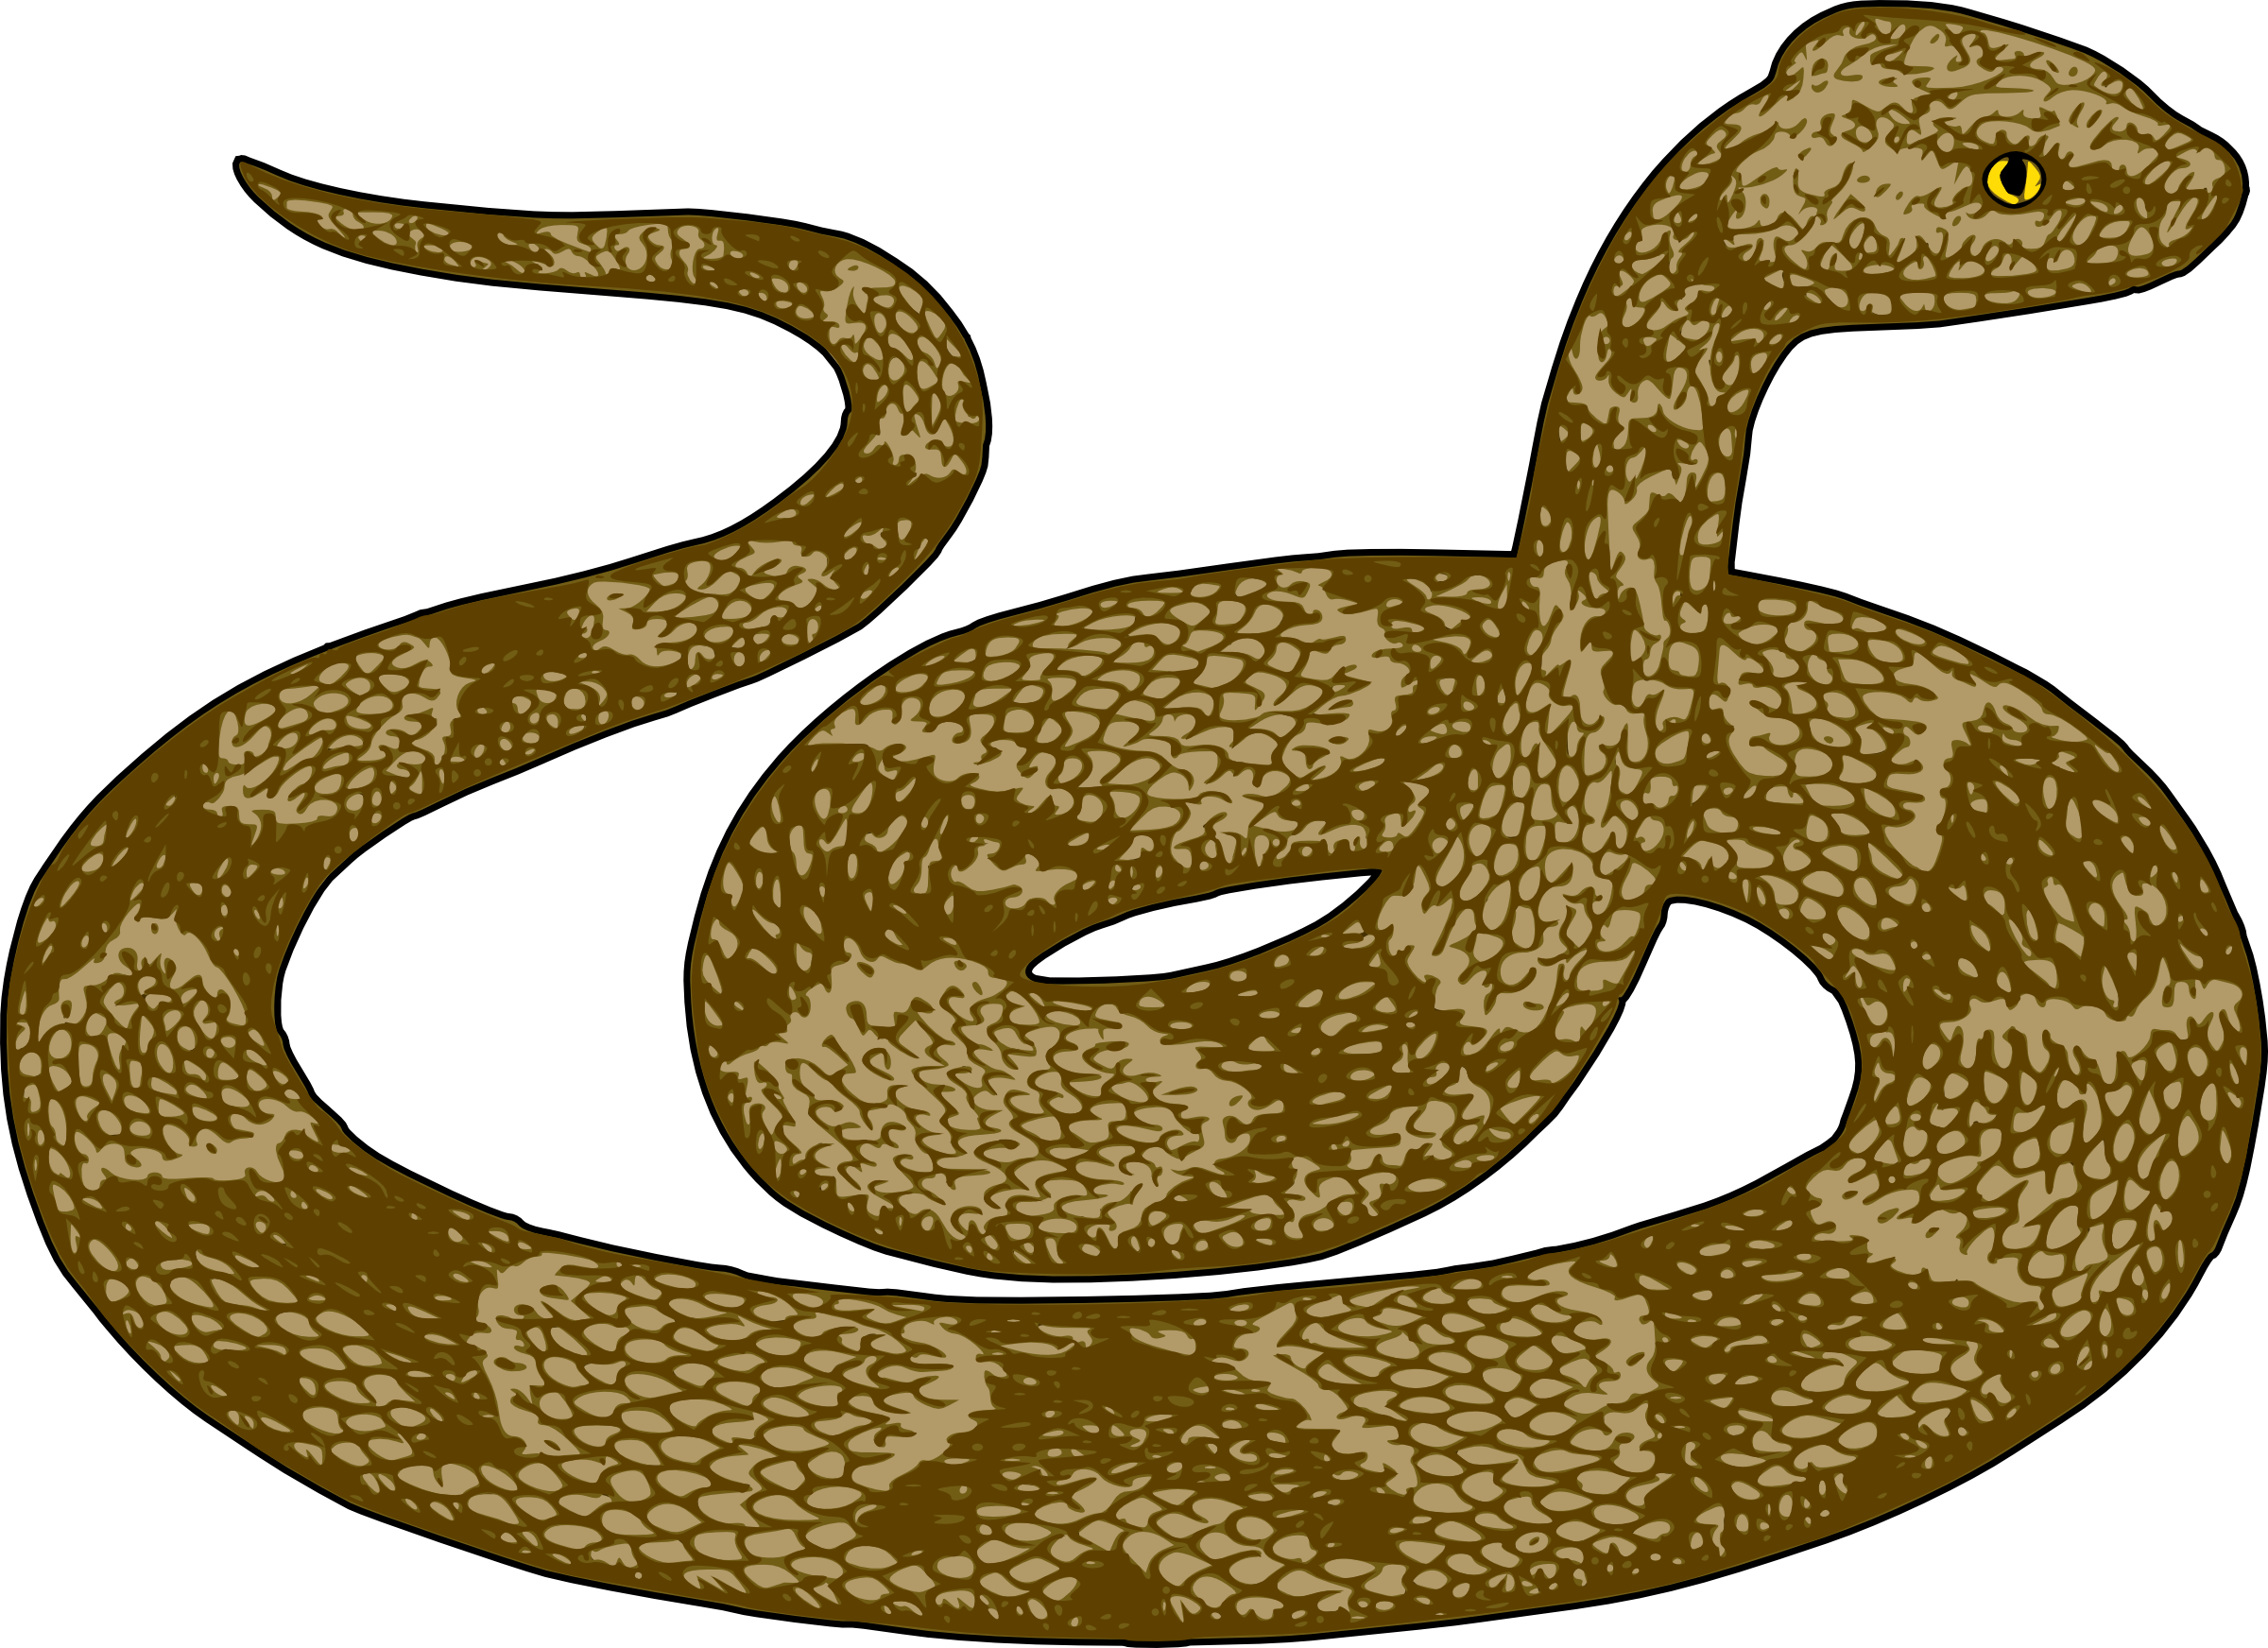 Snake clipart png. Collection of ajgar